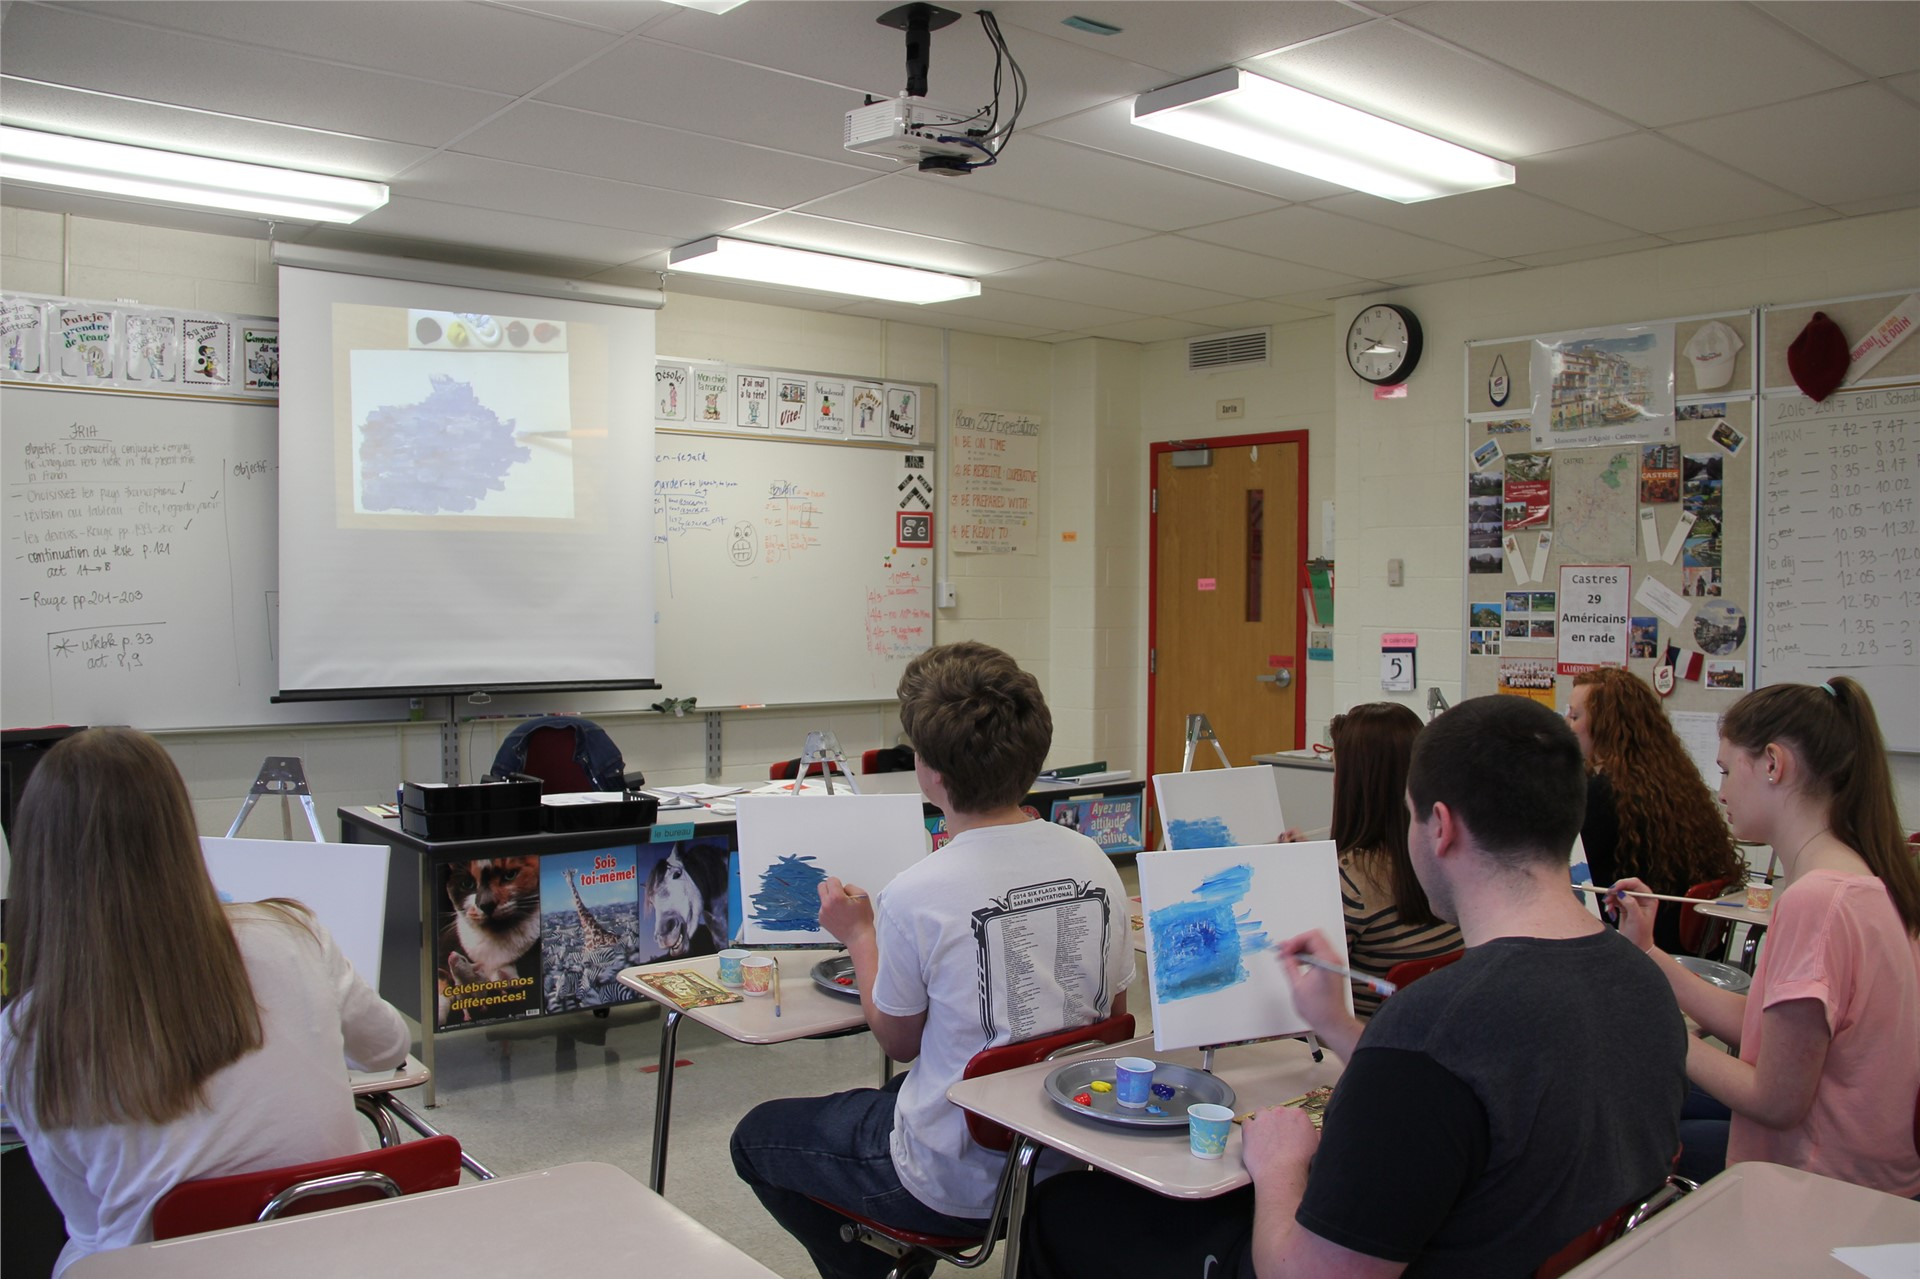 students painting a picture shown on screen